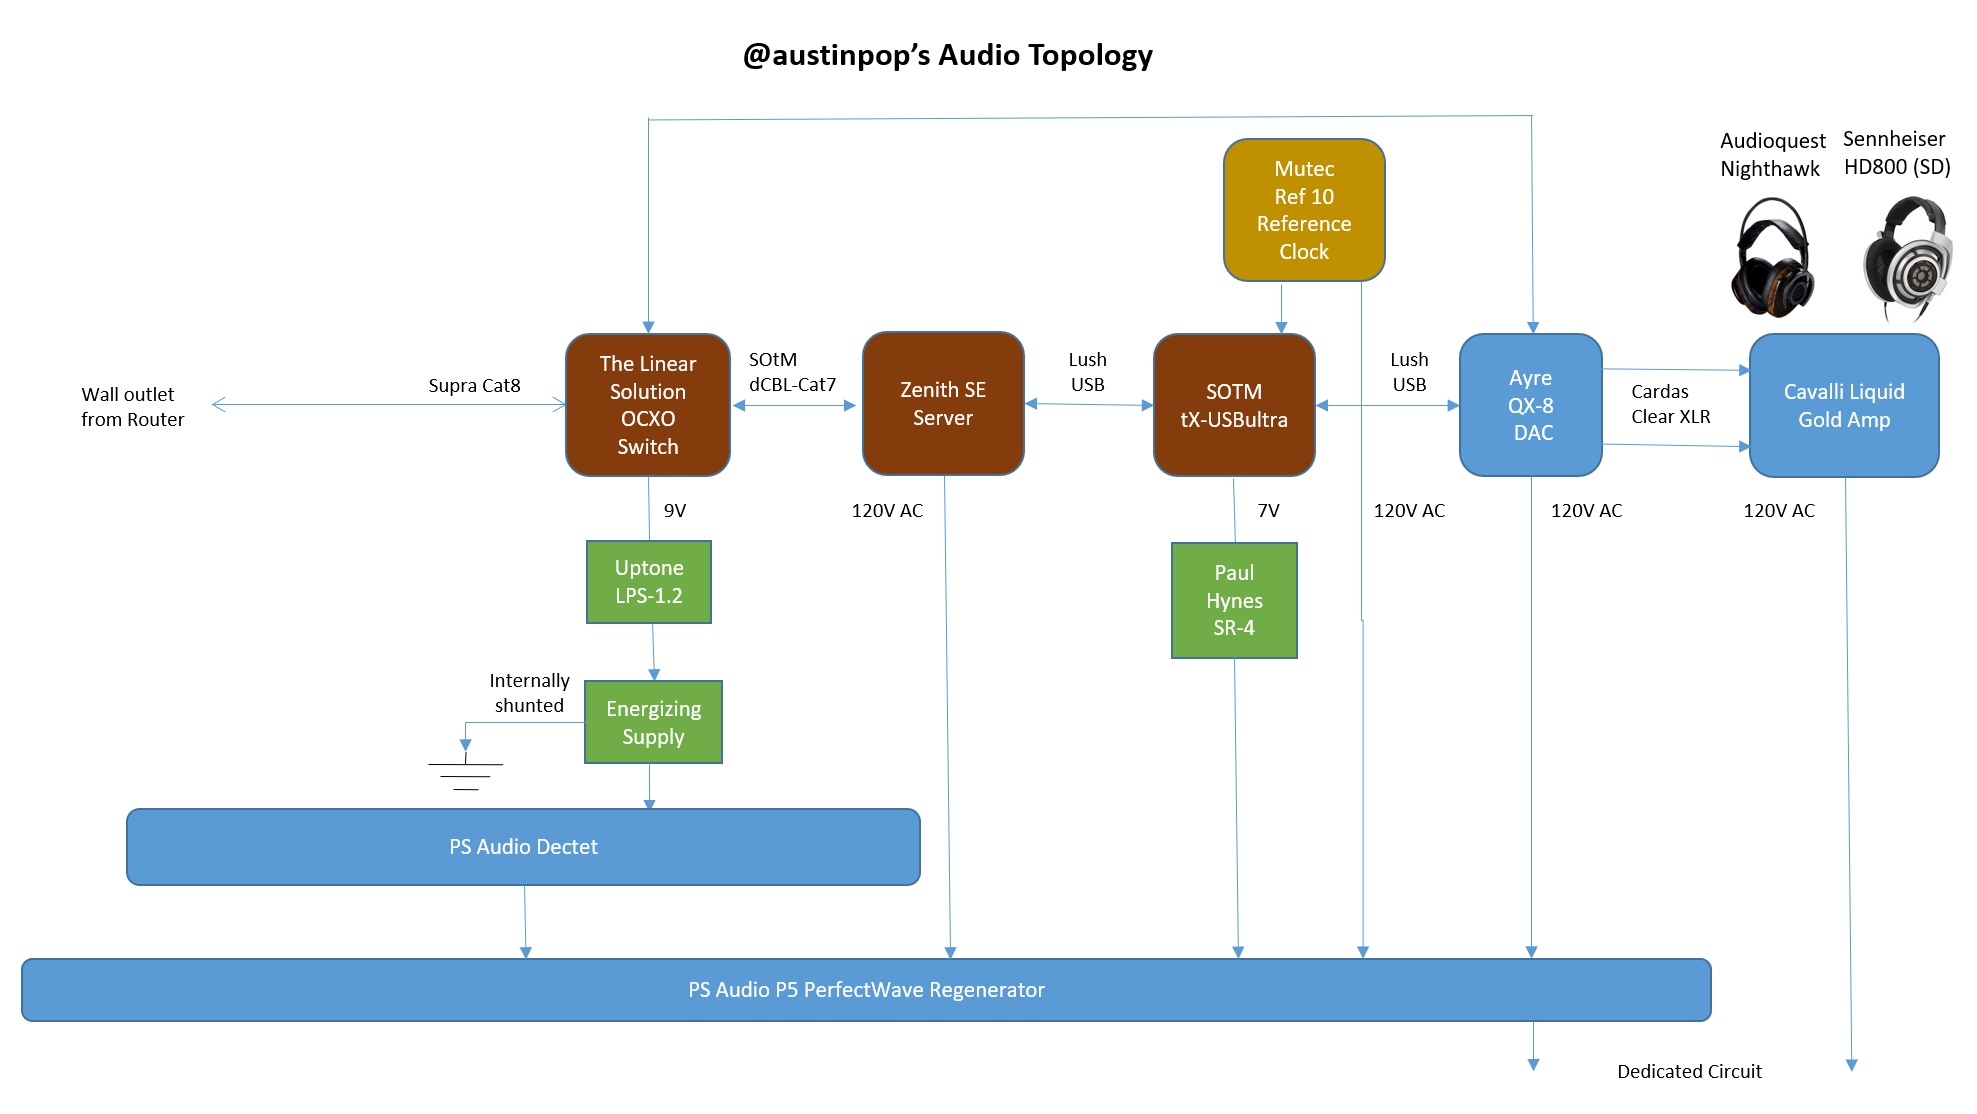 My Quest For A New Dac Part 2 Ayre Qx 8 Reviews Computer Sennheiser Wiring Diagram Audio Topology